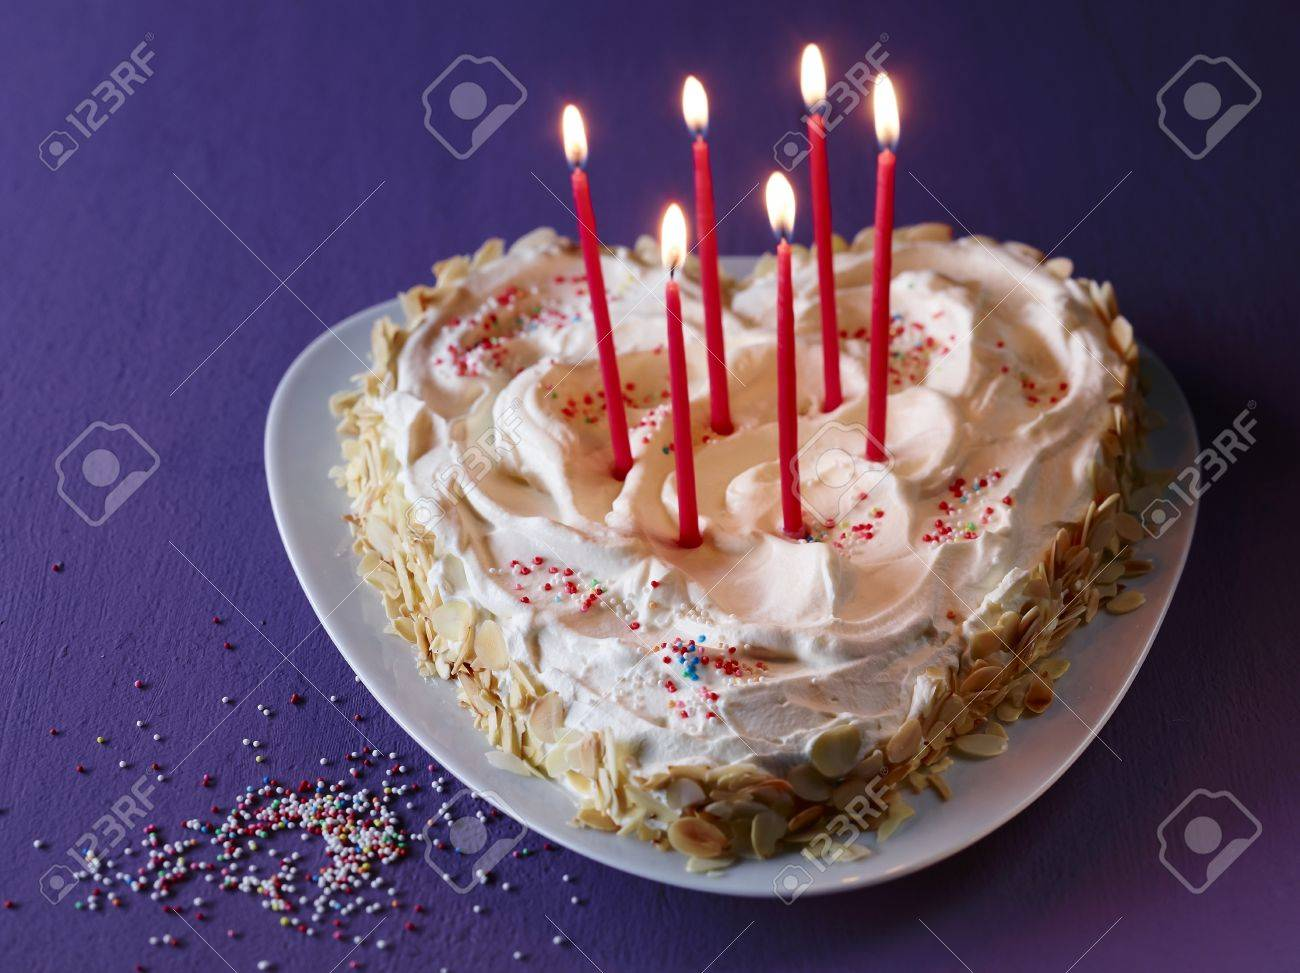 Pleasing A Heart Shaped Cake With Burning Candles For Birthday Stock Photo Personalised Birthday Cards Veneteletsinfo